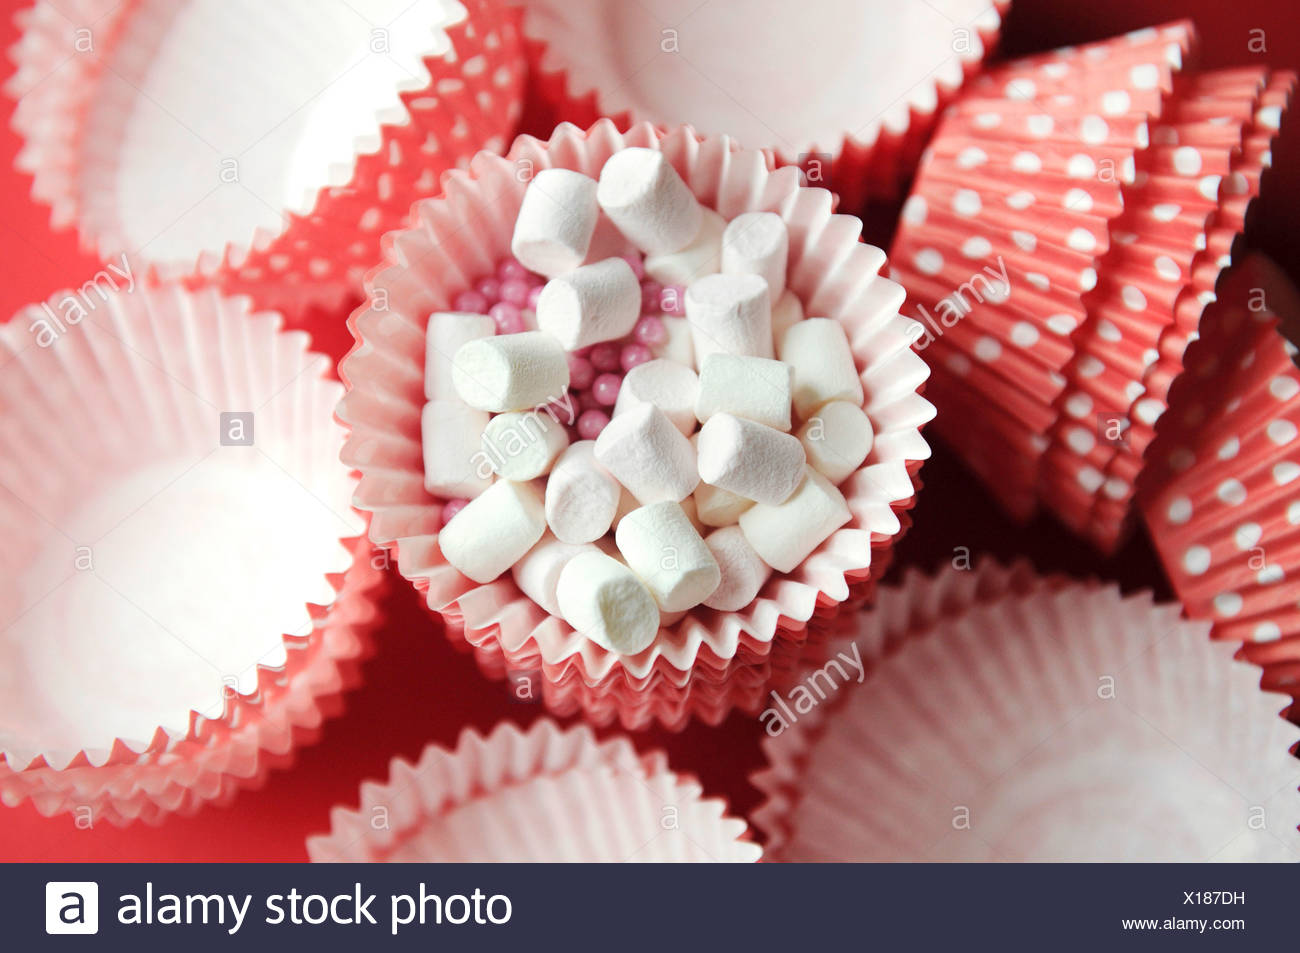 Pink Muffin cases with white dots and mini marshmallows - Stock Image